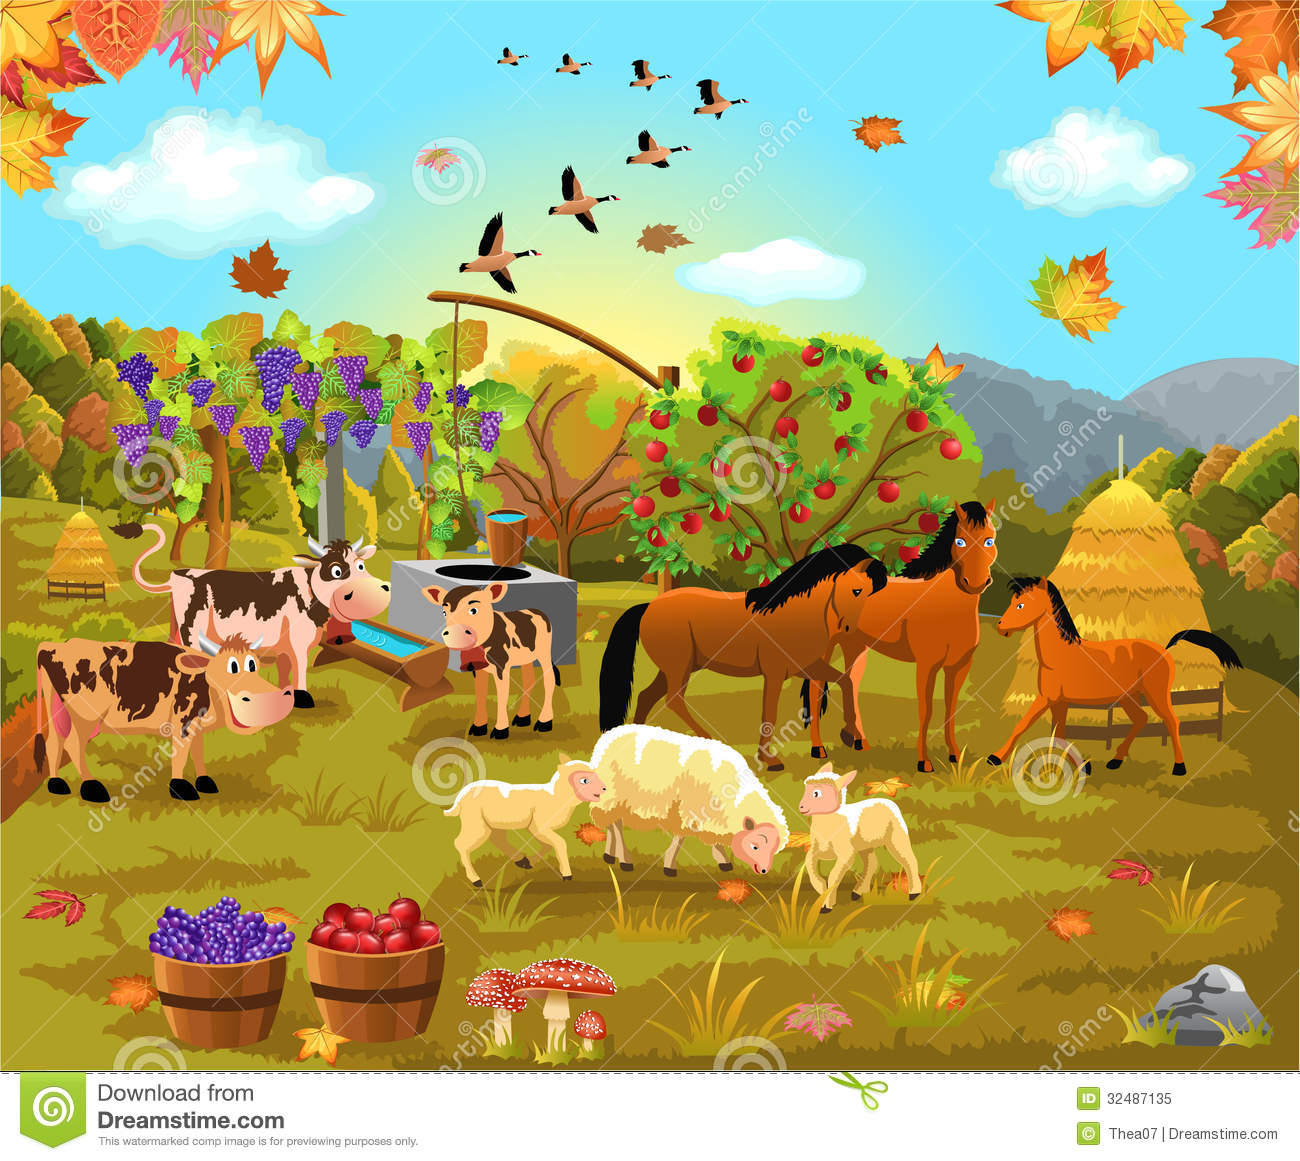 Vector Illustration Of Autumn Scene With Animals And Crop In The Field